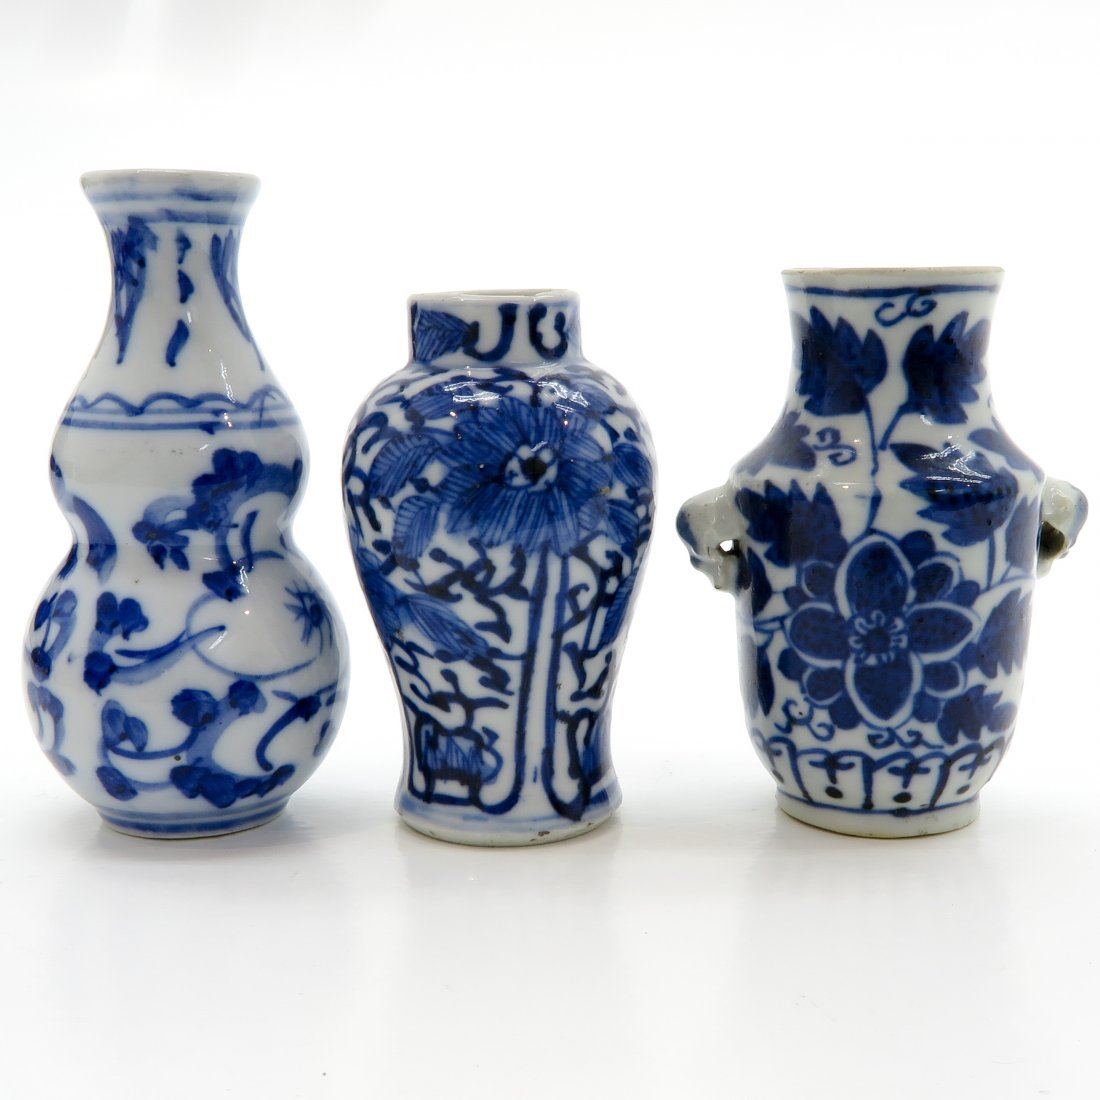 Lot of China Porcelain Miniature Vases - 3